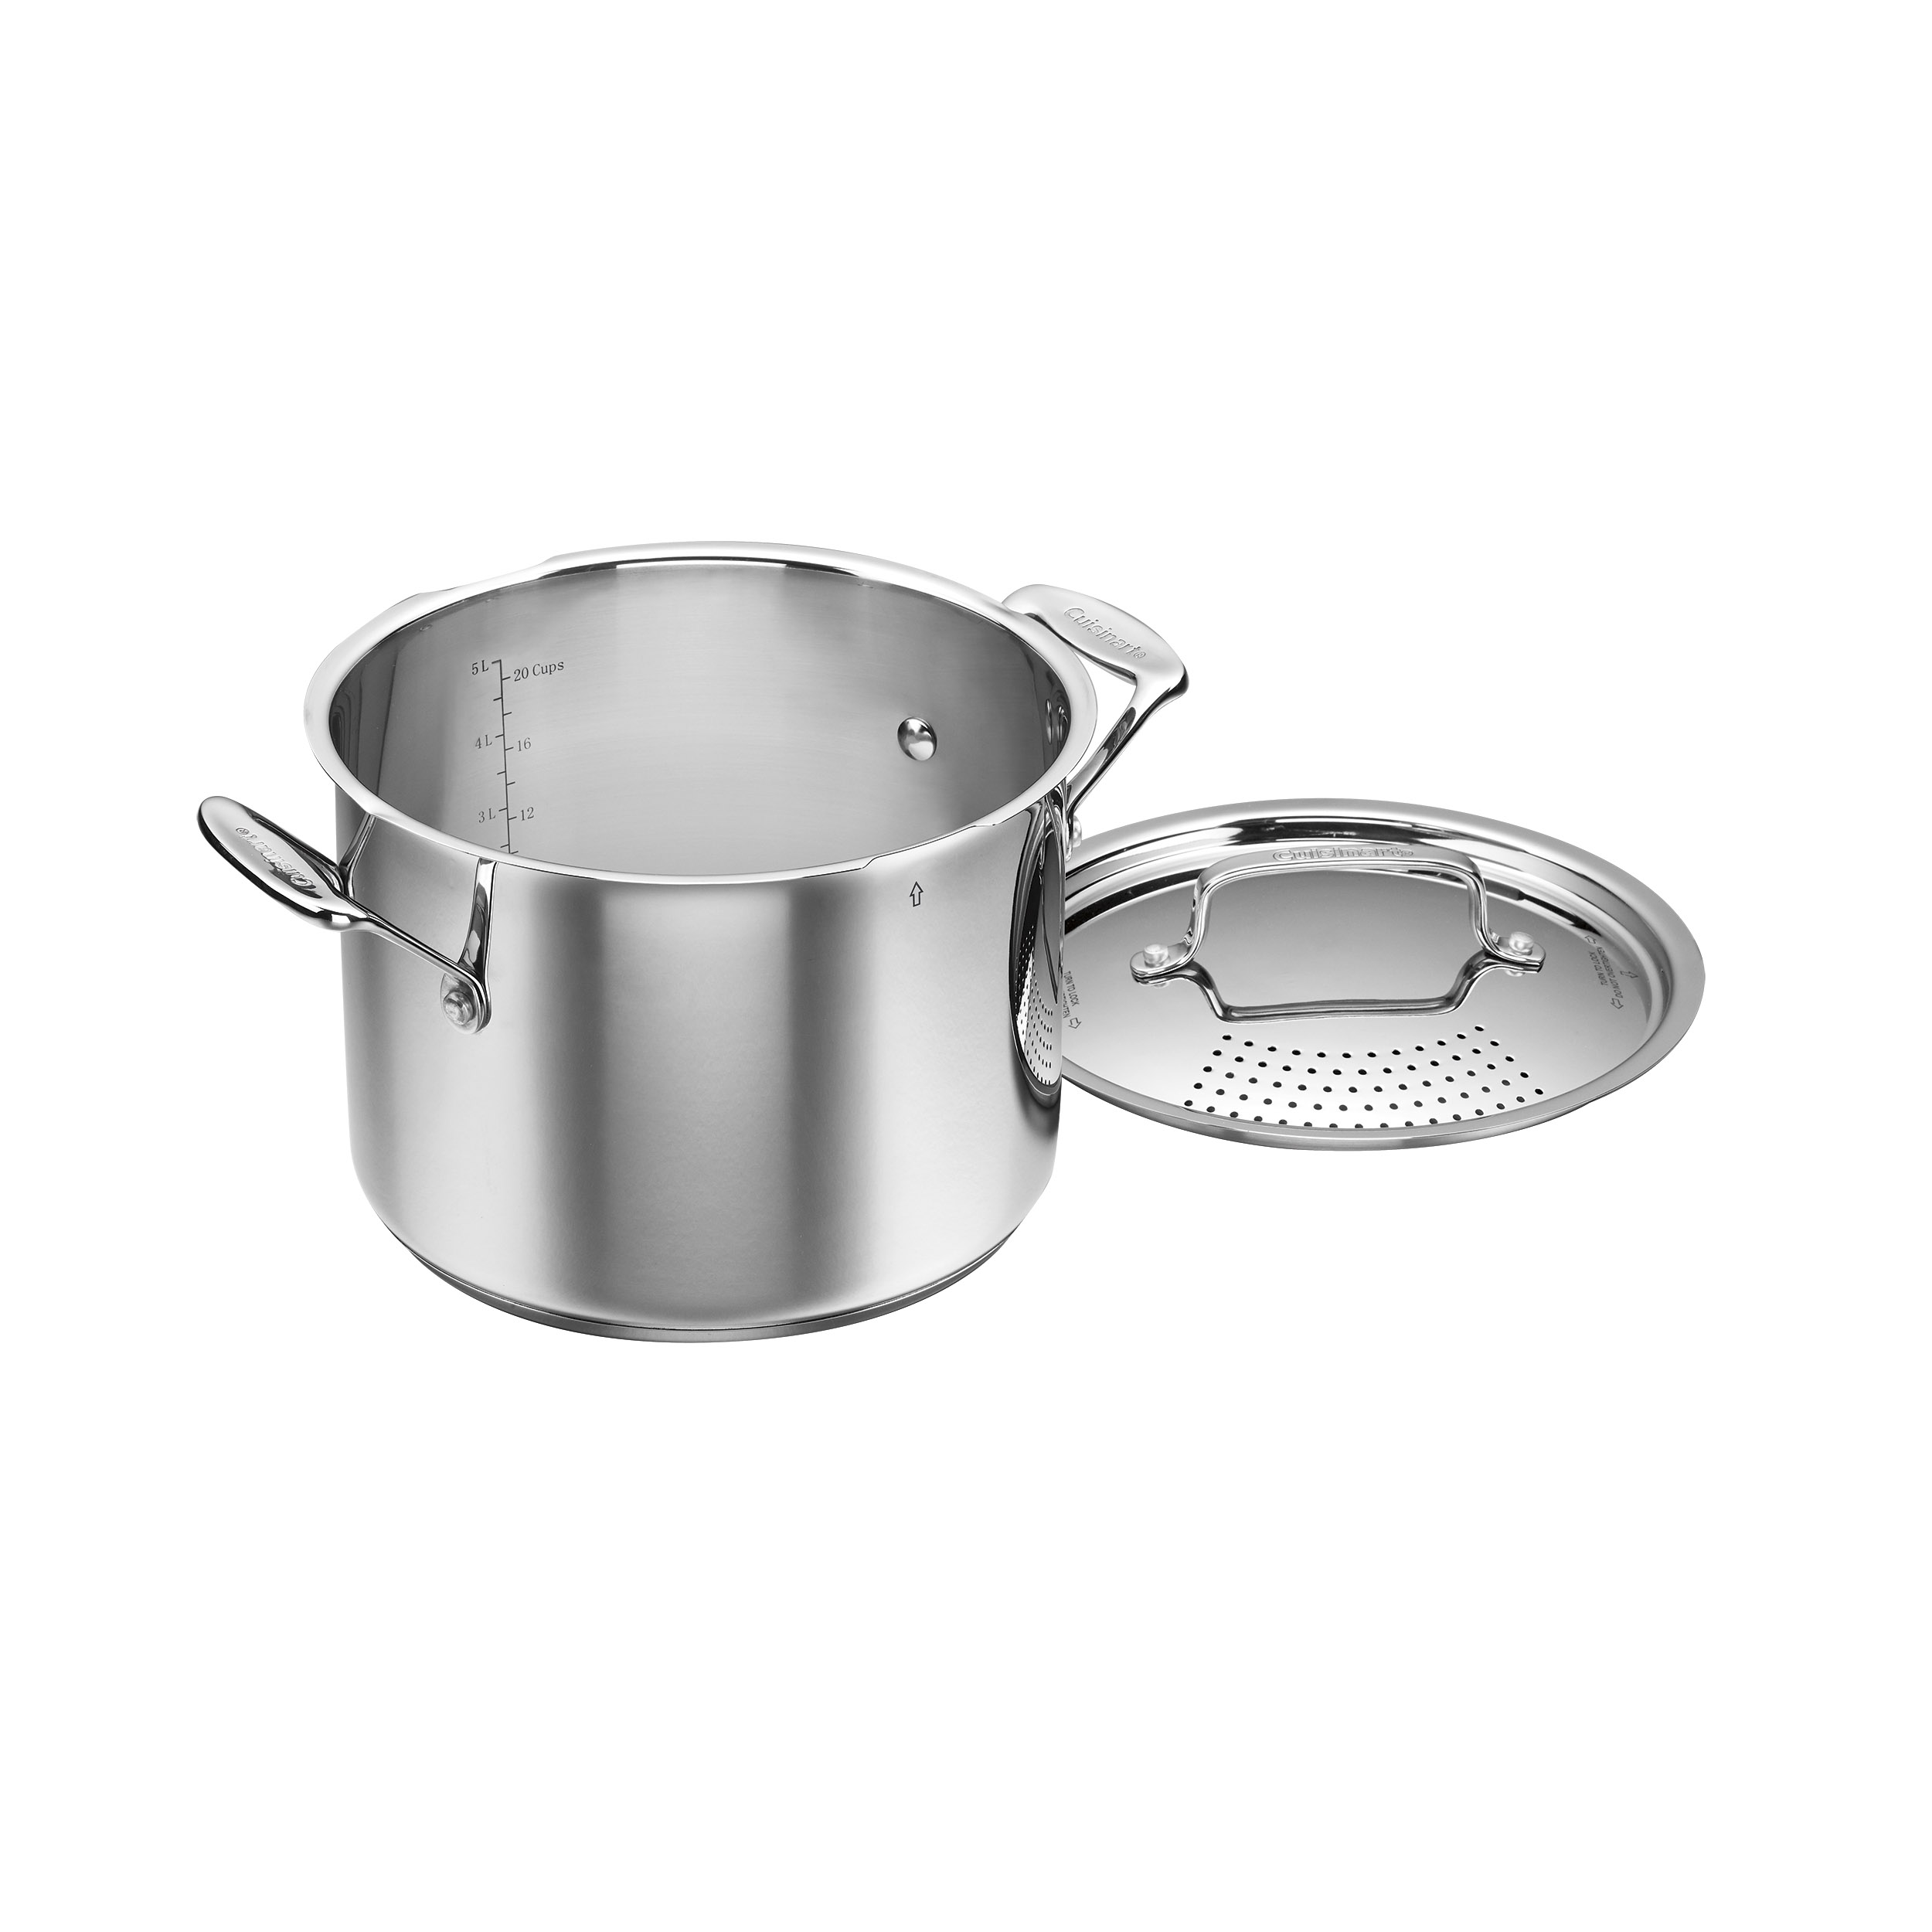 Chef's Classic™ Stainless 6 Quart Stockpot with Straining Cover